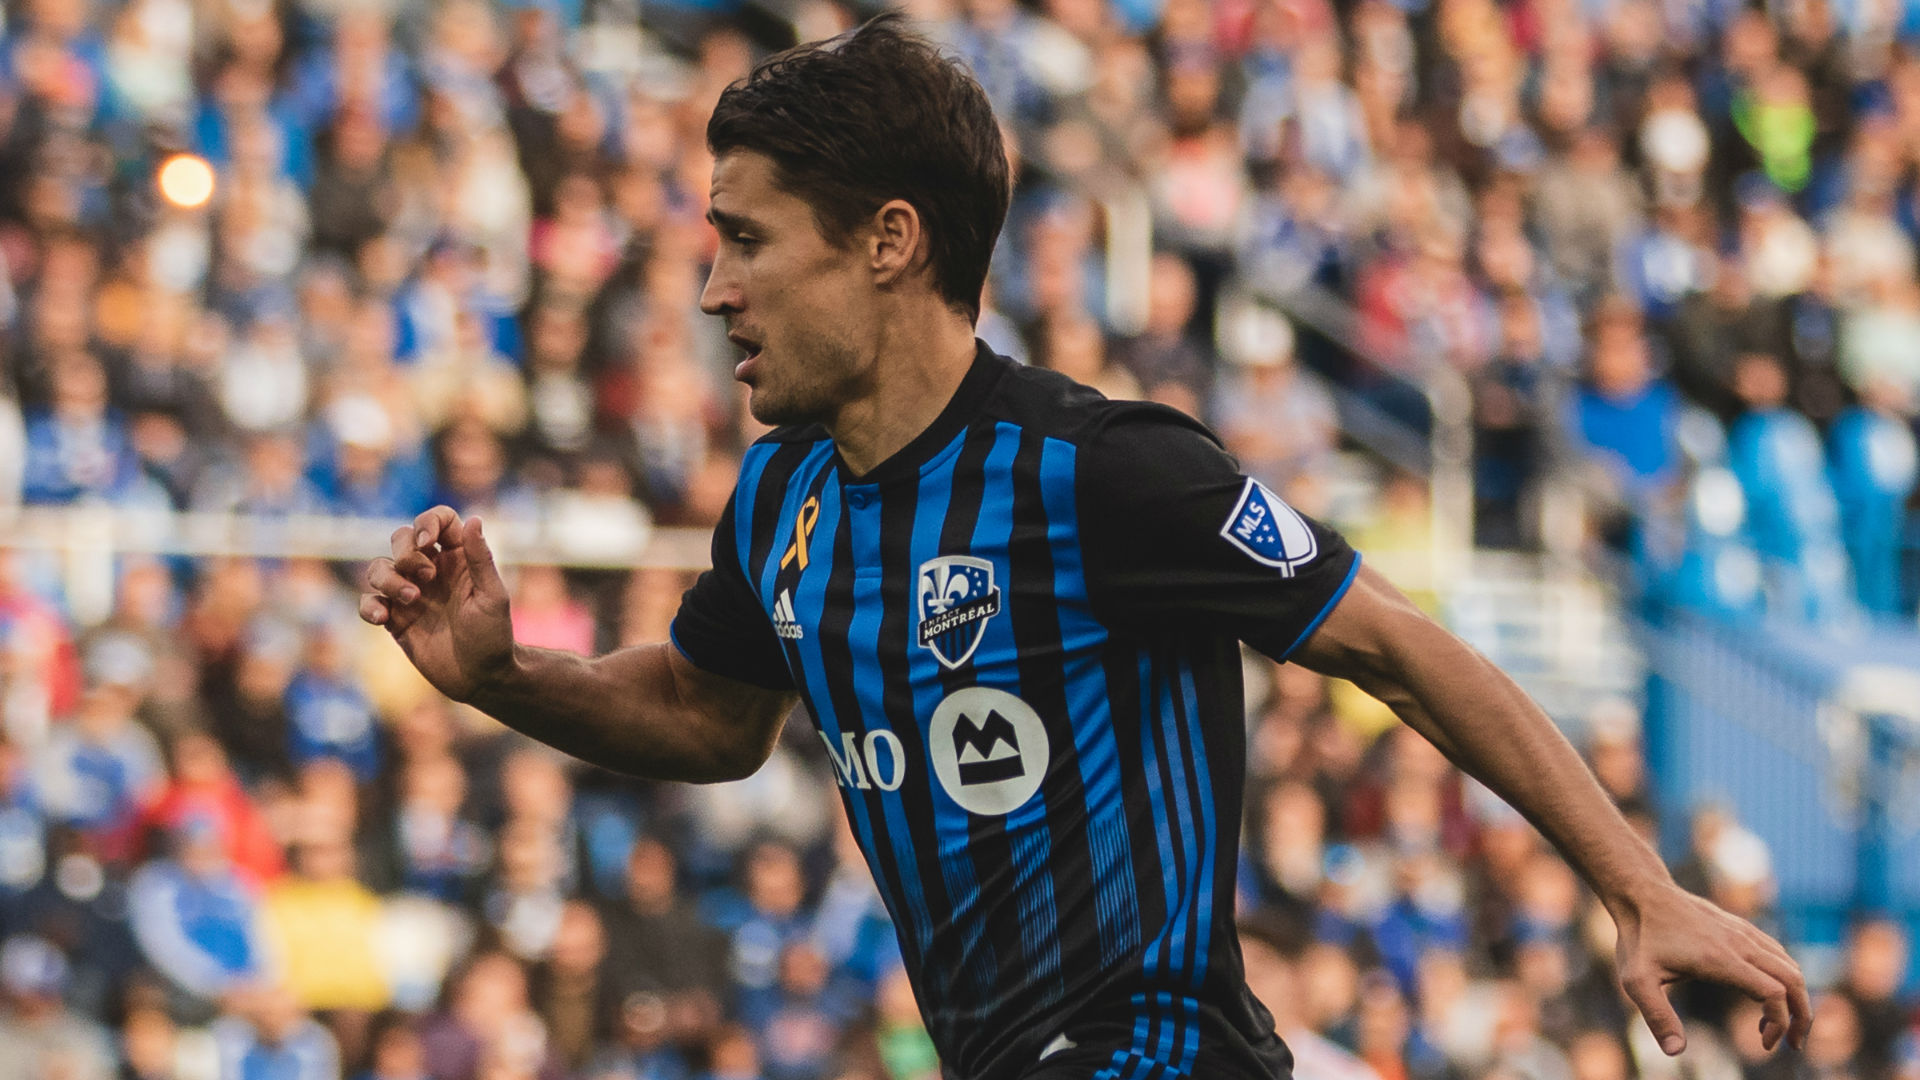 Montreal Impact's Bojan Krkic embraces all that has led to him to MLS and Thierry Henry reunion: 'I am who I am'